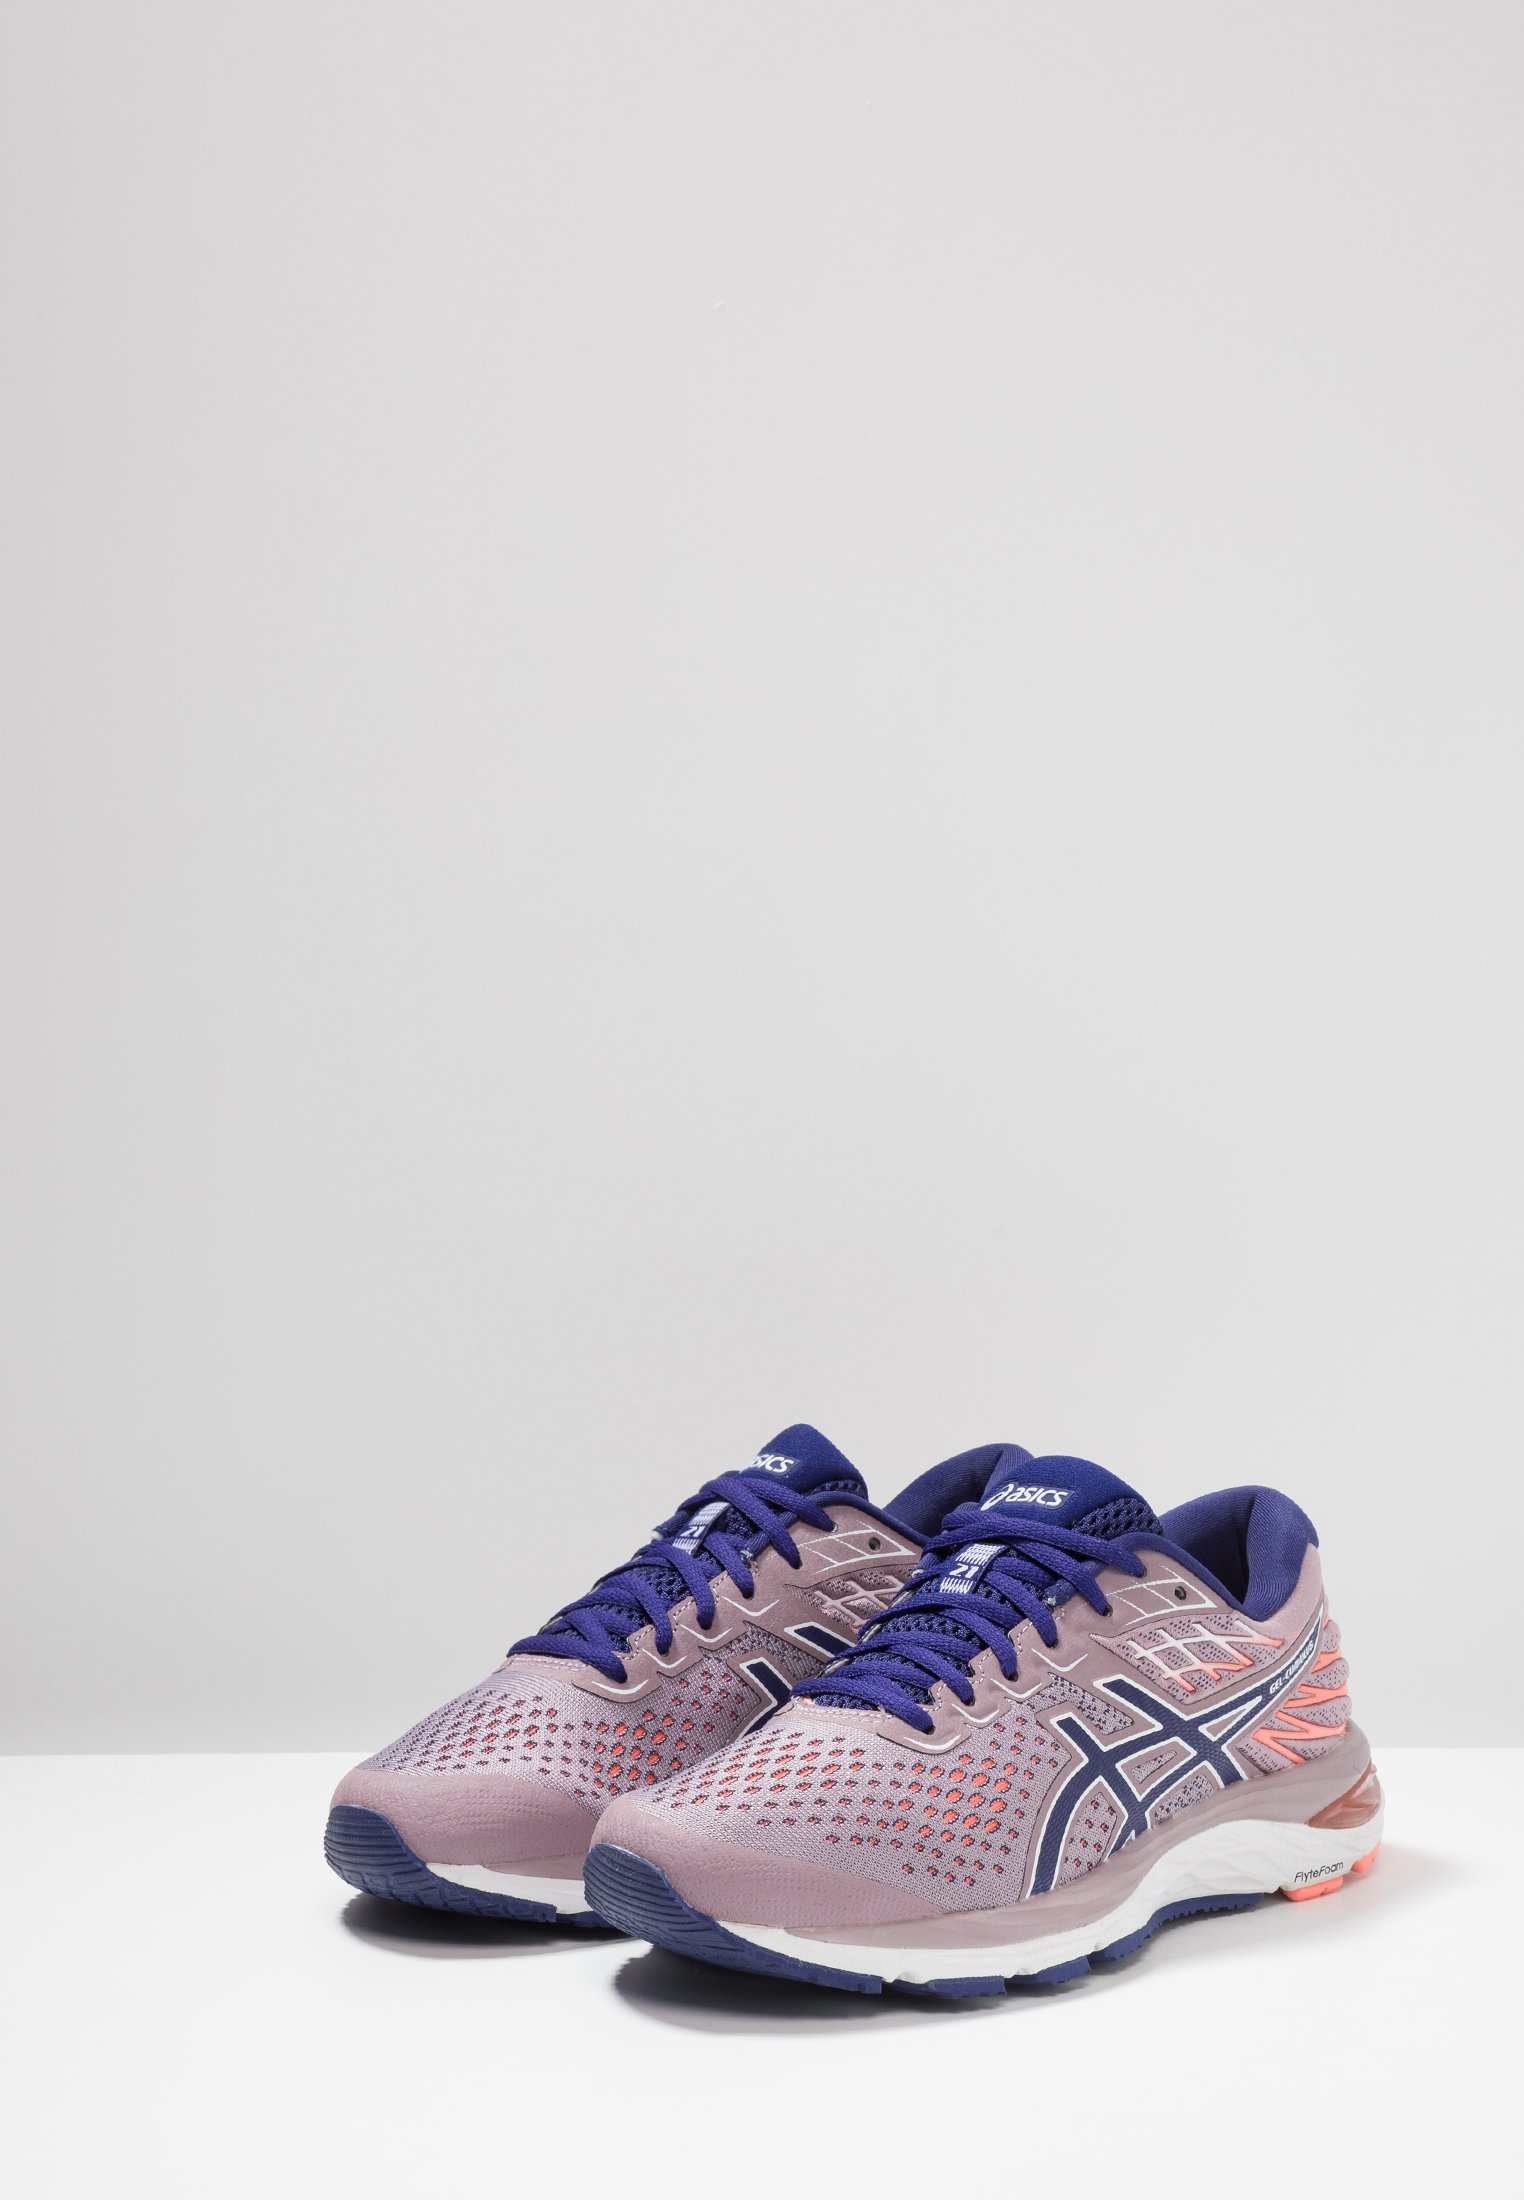 Asics Gel-cumulus 21 - Laufschuh Neutral Violet Blush/dive Blue Black Friday